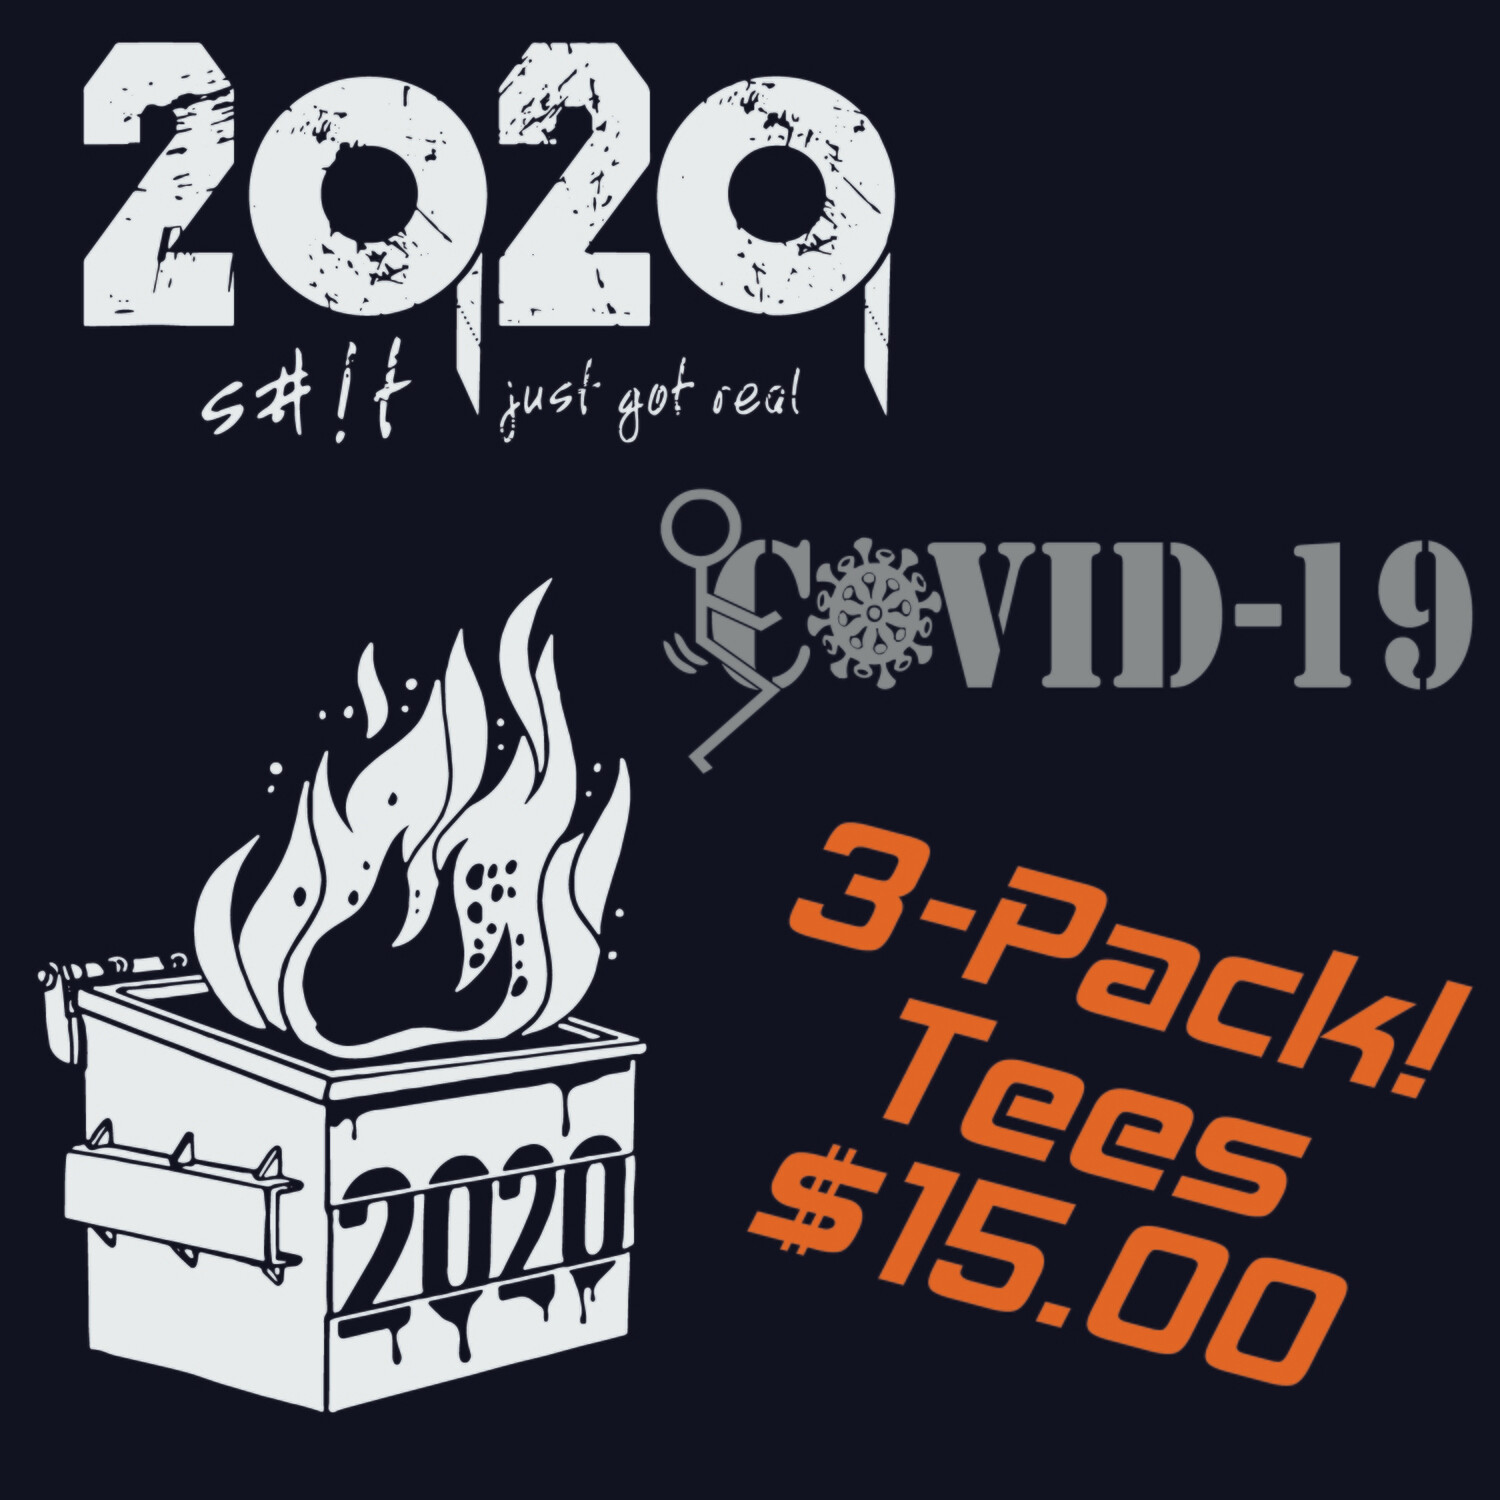 T-Shirts 3-PACK DEAL! 2020 Dumpster Fire - F#%K Covid-19 - S#!t Just Got Real